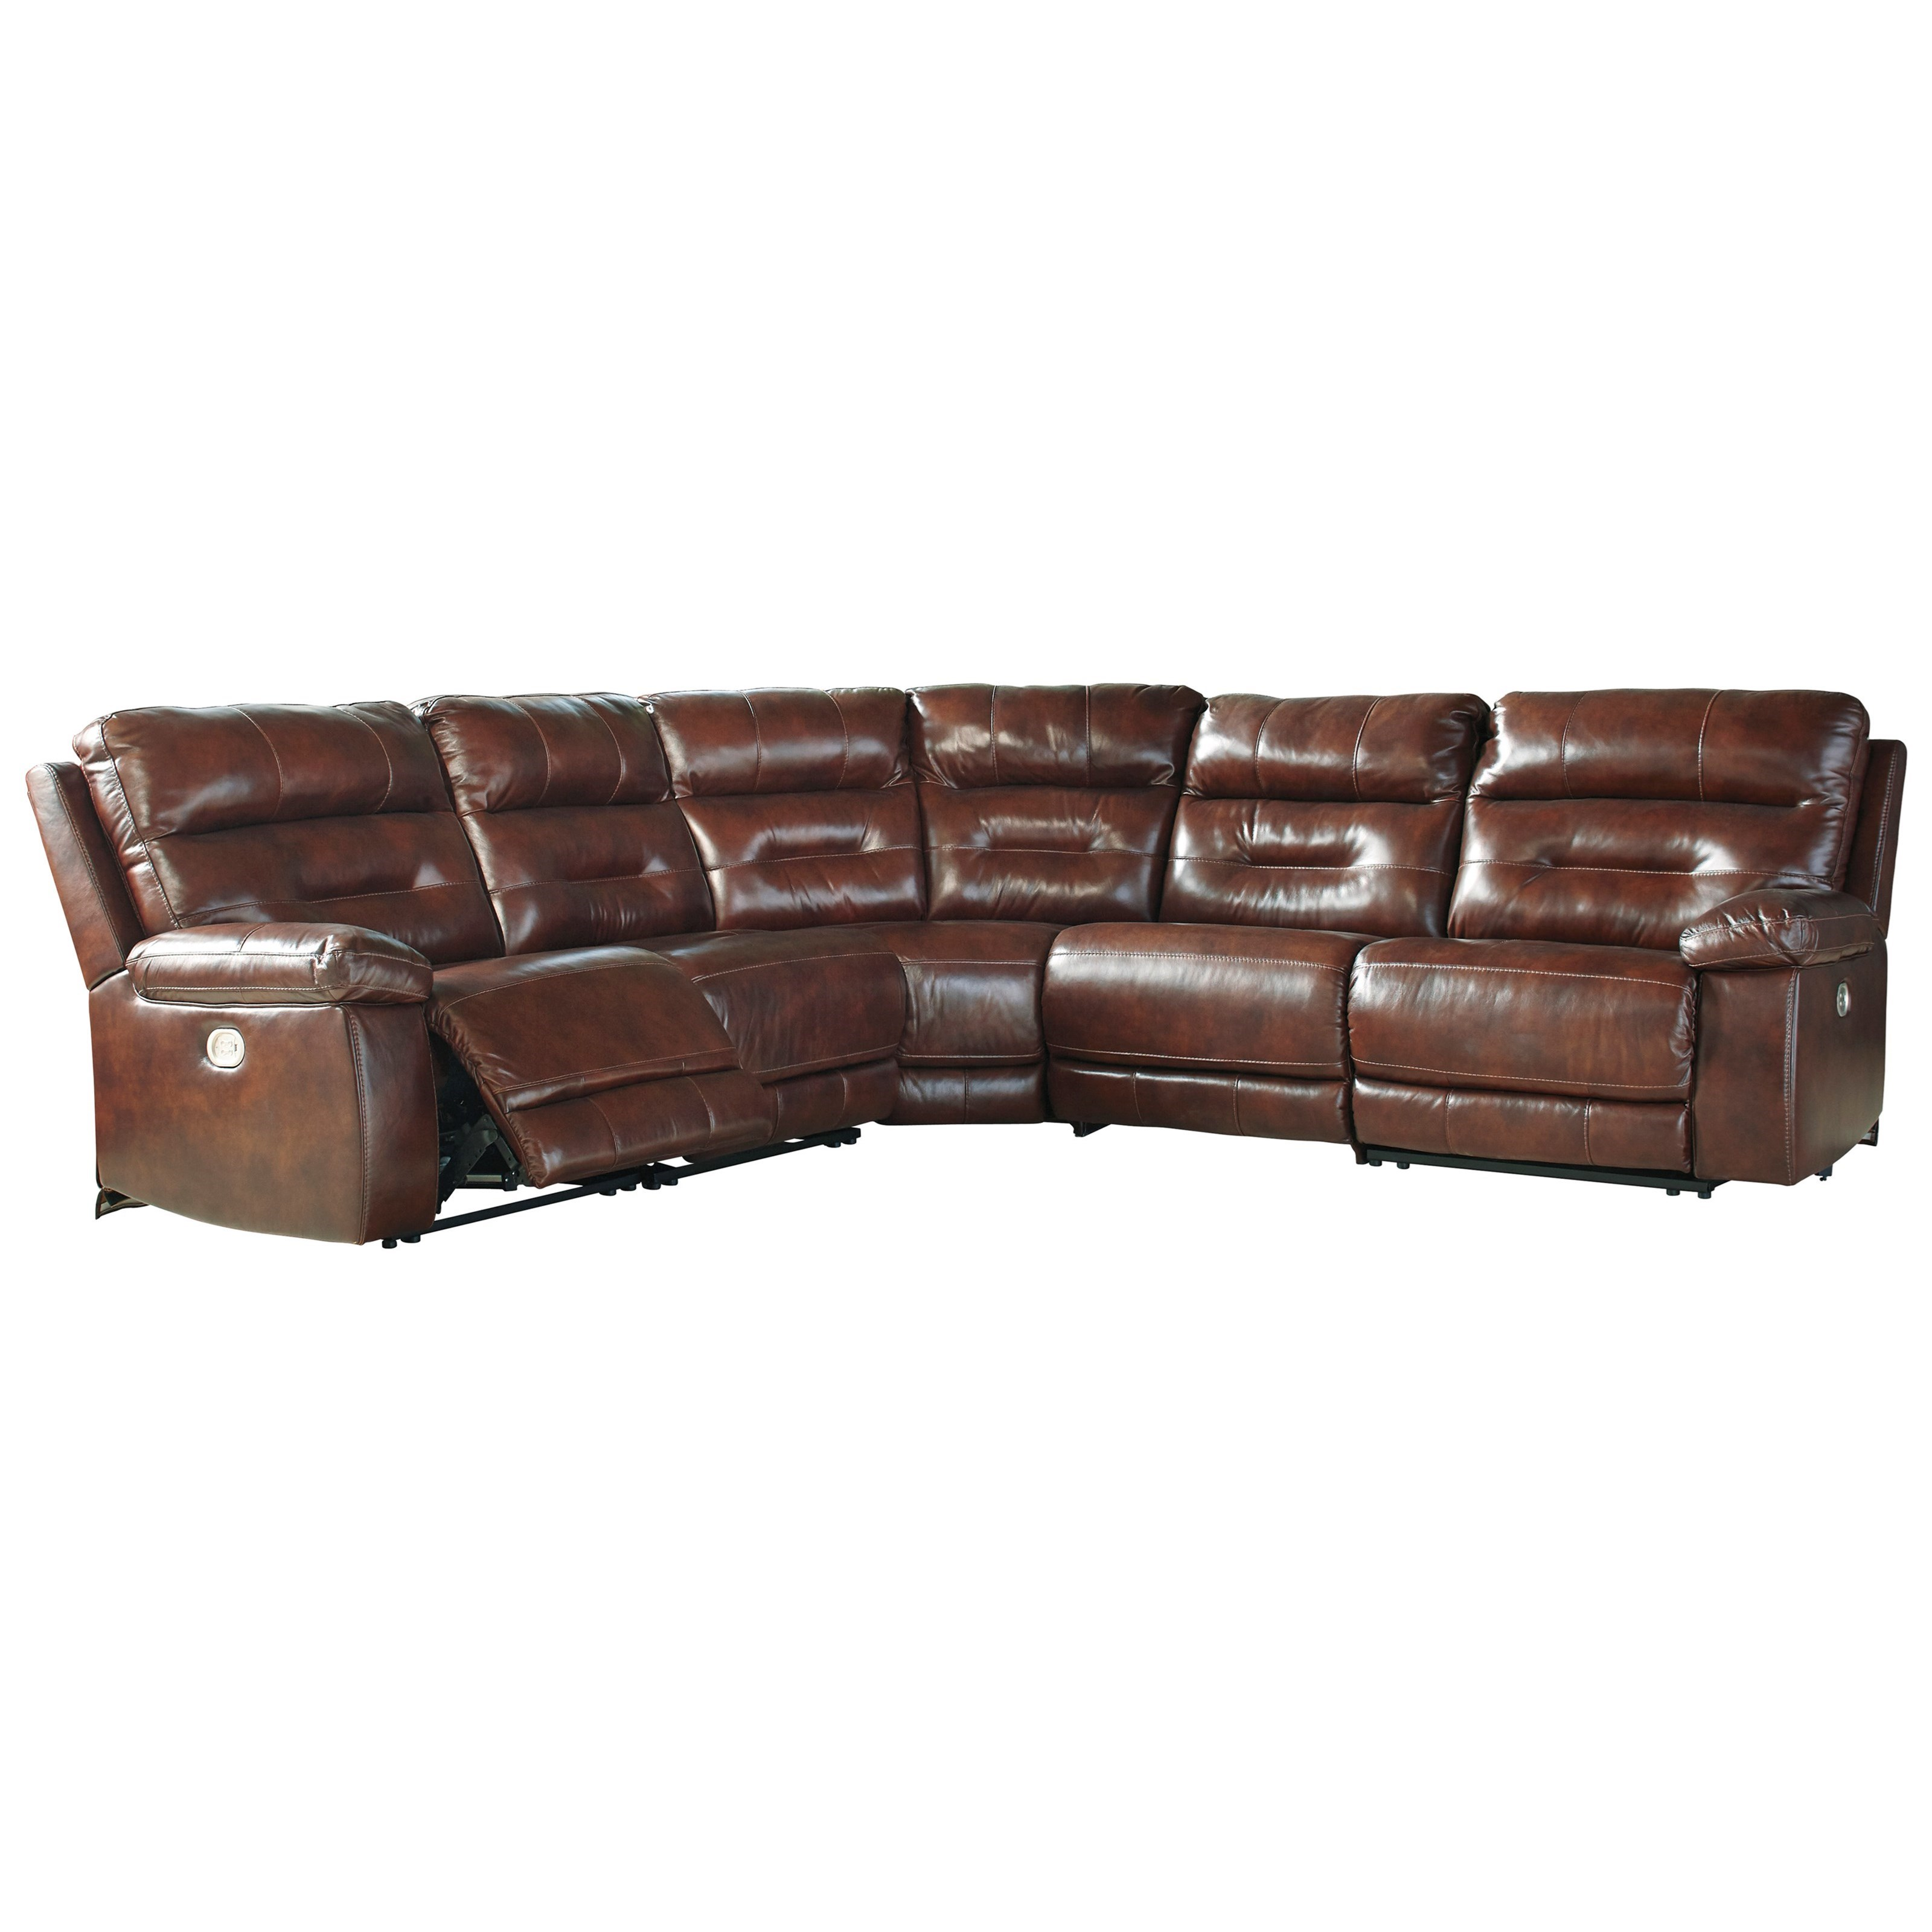 Signature Design by Ashley Bancker Power Reclining Sectional - Item Number: 7030058+19+77+46+62